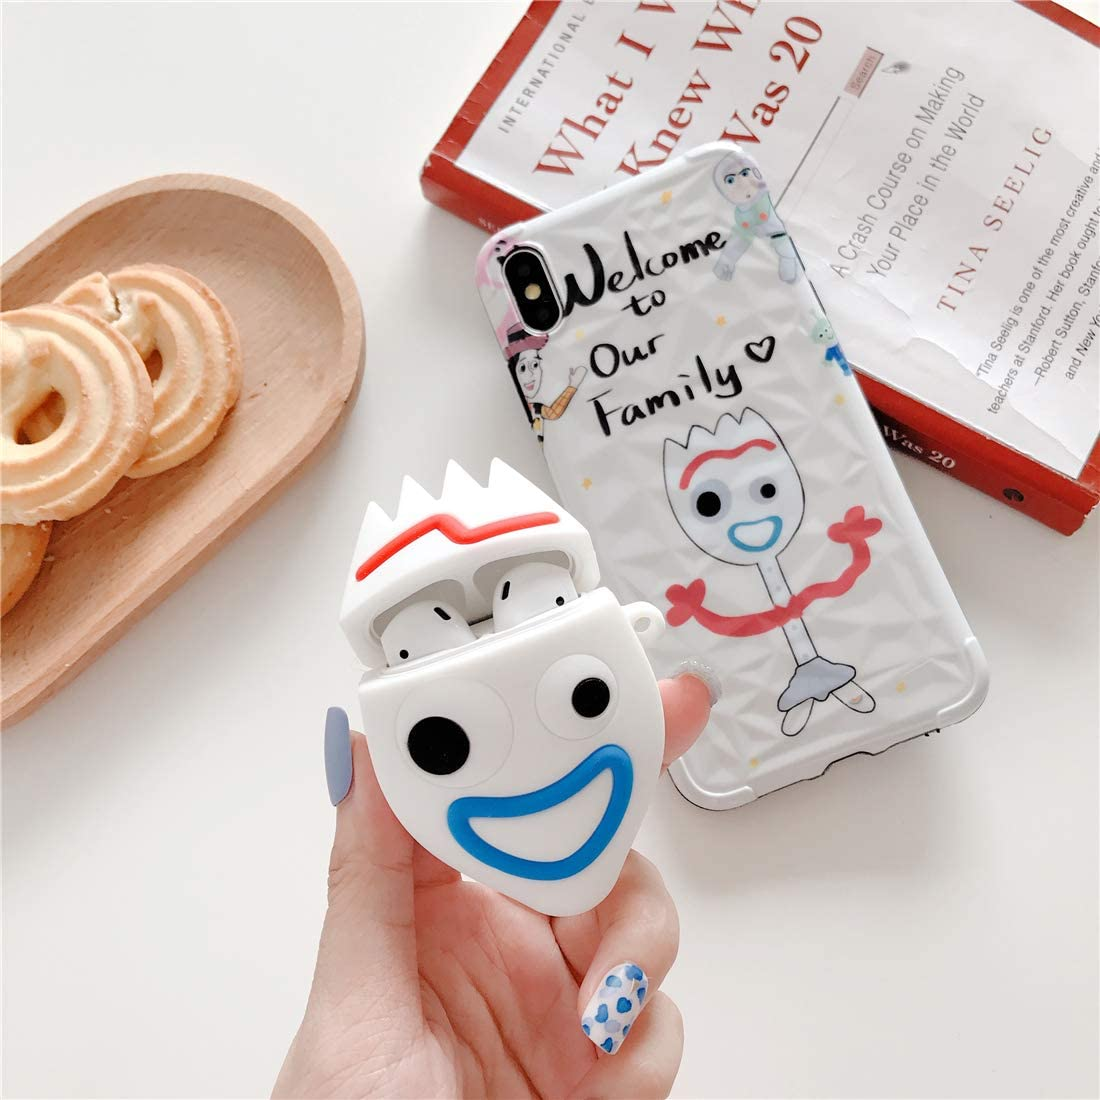 Accessories Carabiner Protective Fun Fashion Character Skin Soft Silicone Cover for Air pods 2//1 Cute Funny Cool Pattern Design for Girls Boys Kids Gift-Hero Happy Fork Cartoon Case for Airpods